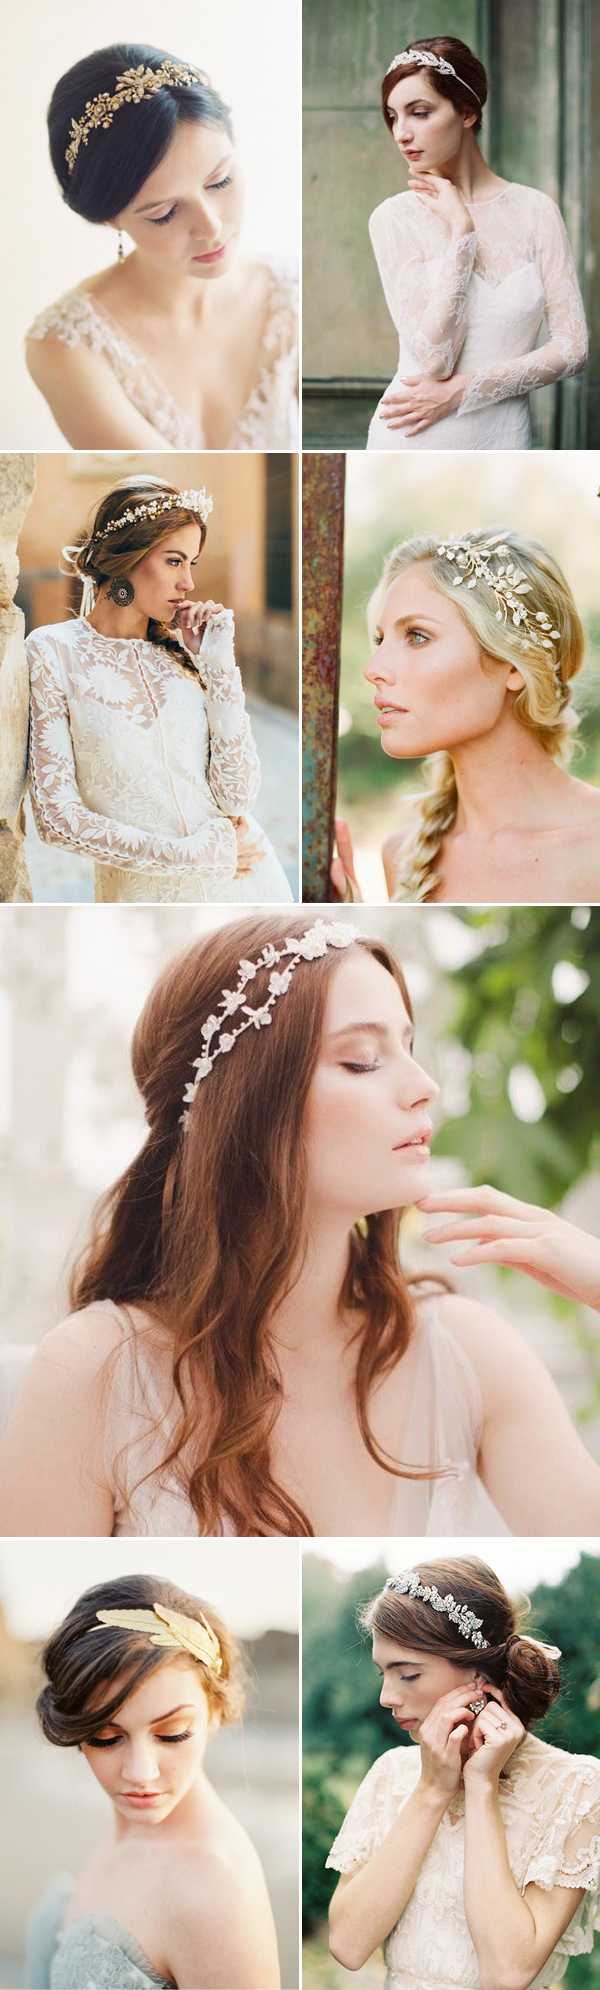 Headband Designers (from the top, left to right): Erica Elizabeth / Enchanted Atelier by Liv Hart  / Gibson Bespoke / Erica Elizabeth Designs (photo by Carmen Santorelli) / Jannie Baltzer / When He Found Her / Enchanted Atelier by Liv Hart